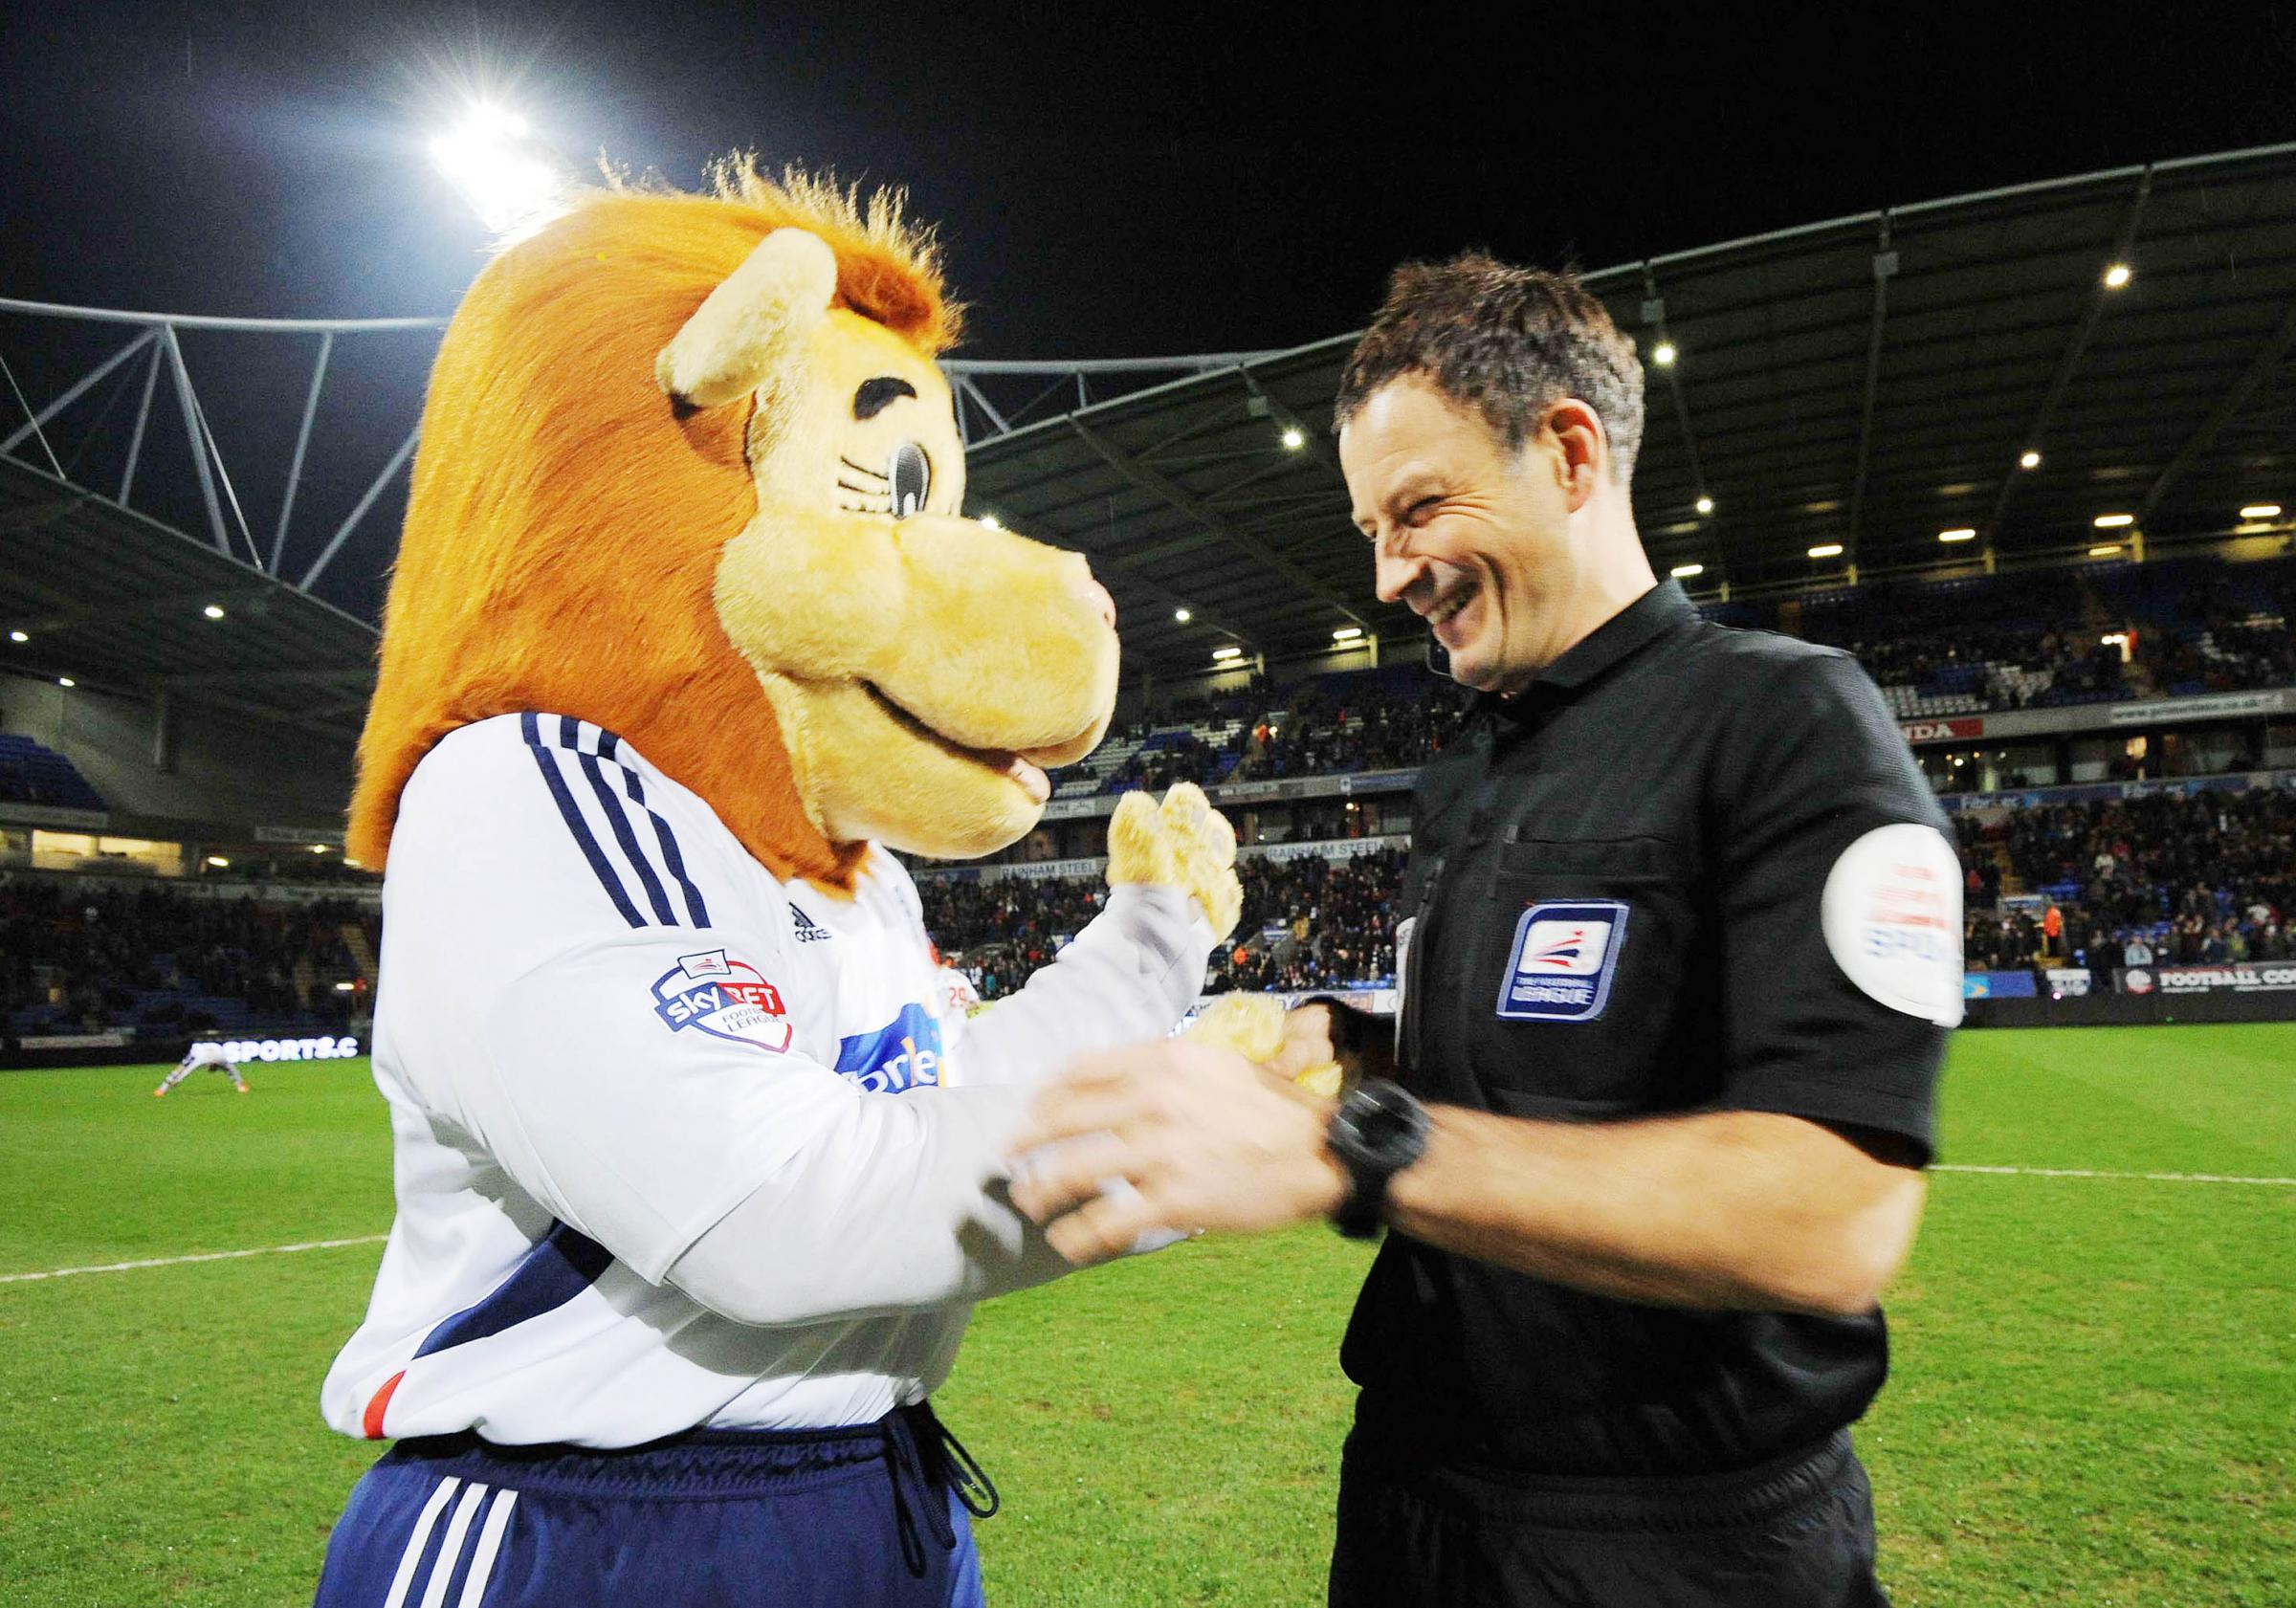 Lofty the Lion jokes with Mark Clattenburg before the Blackpool game